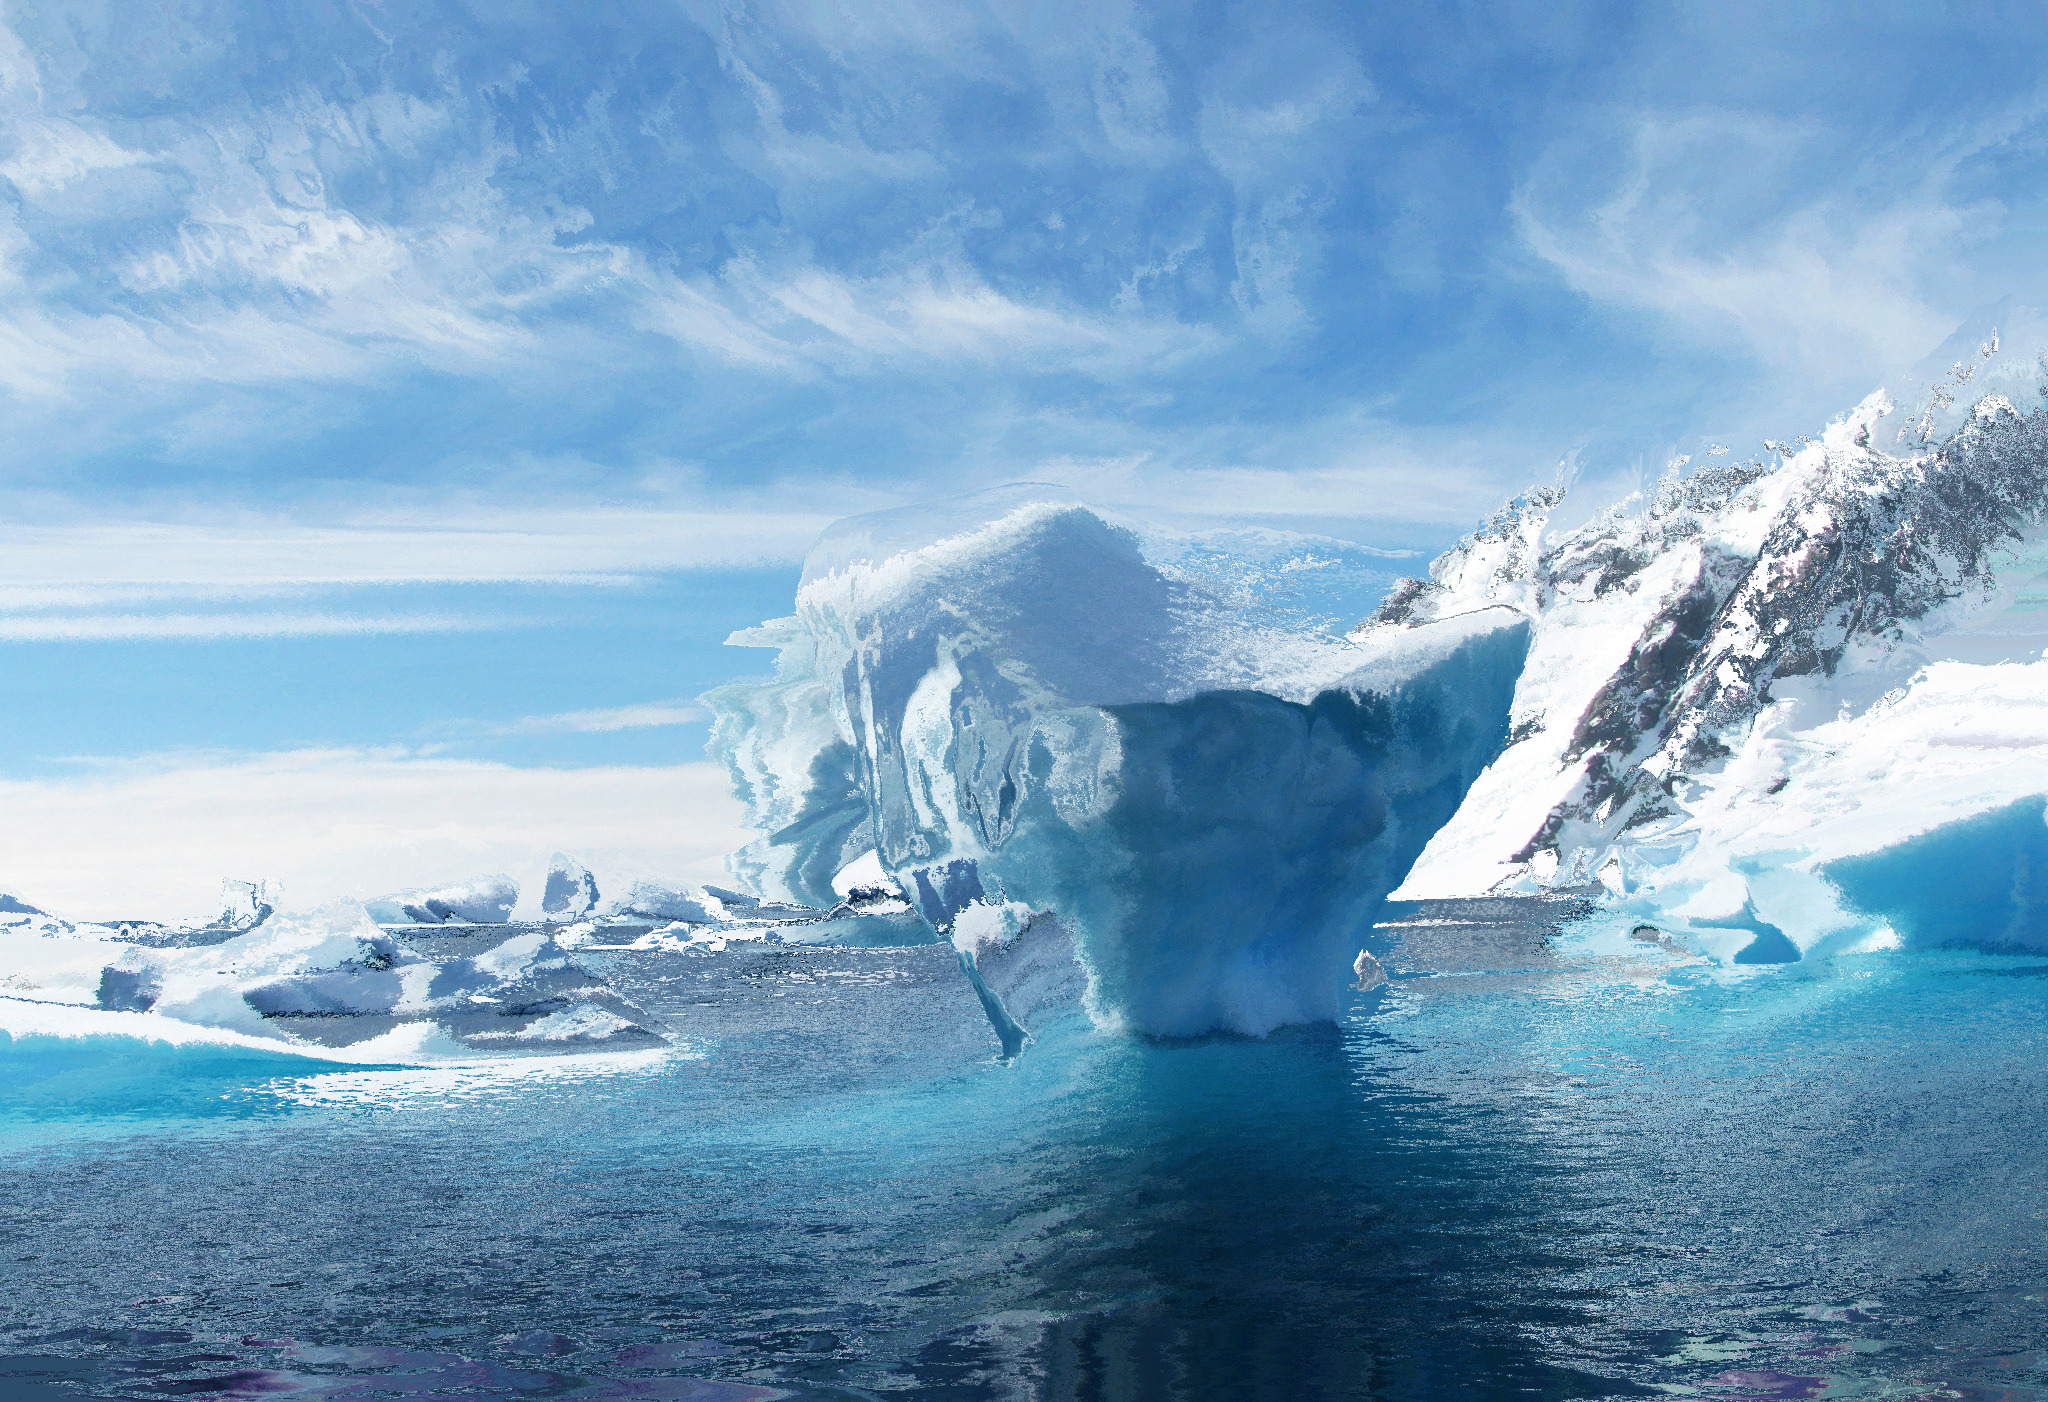 melting antarctica raise sea level more than expected.